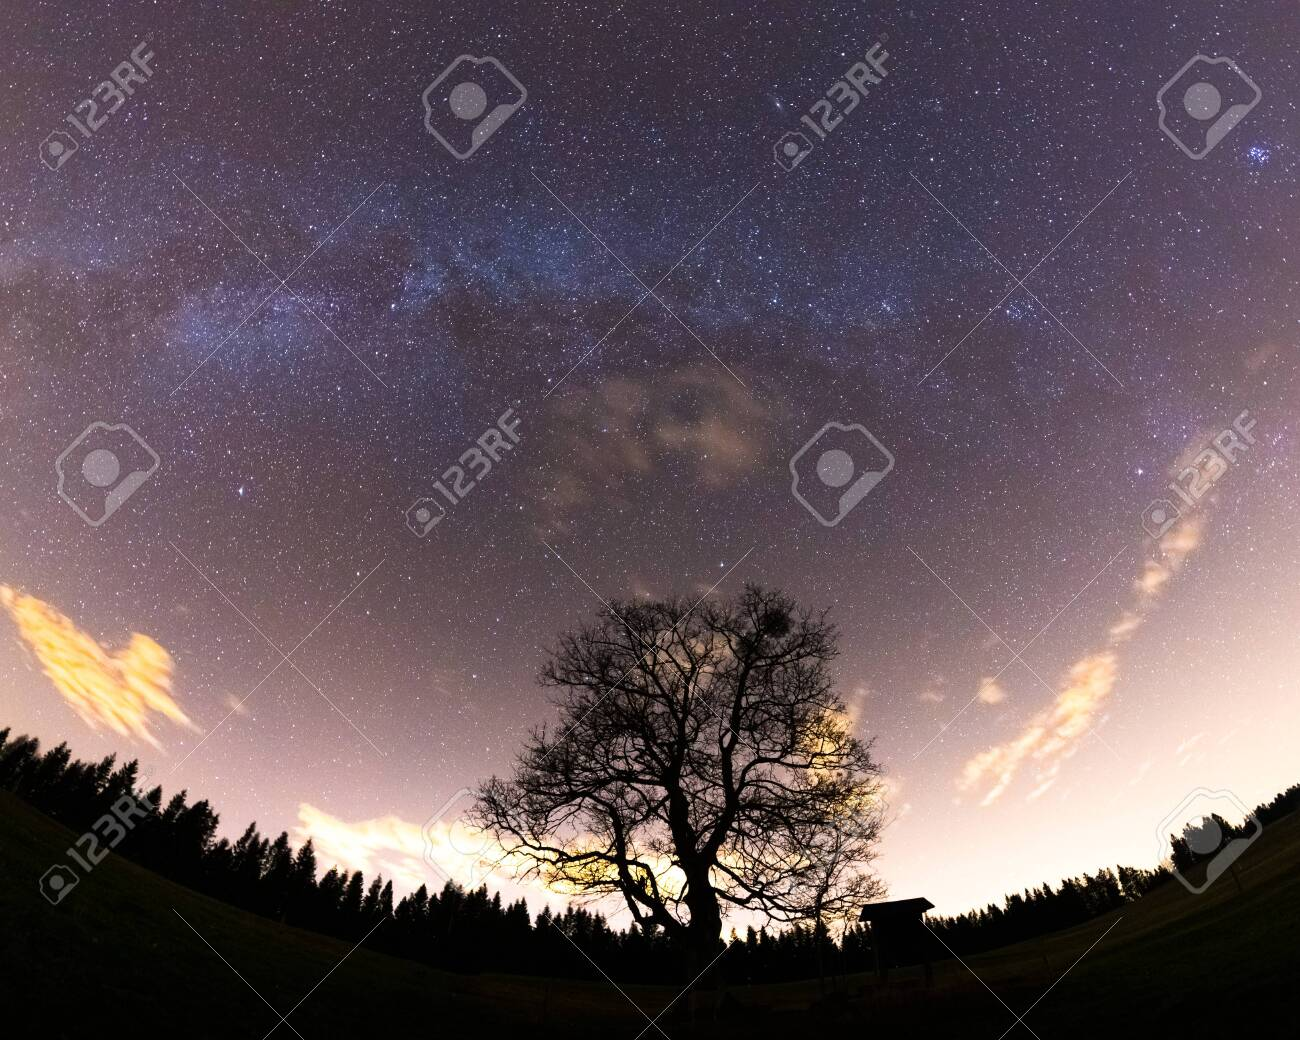 The Milky Way captured wide-spread along with the treetops with a yellow-orange glow on the horizon and lots of stars in the sky during a full night. - 149160142